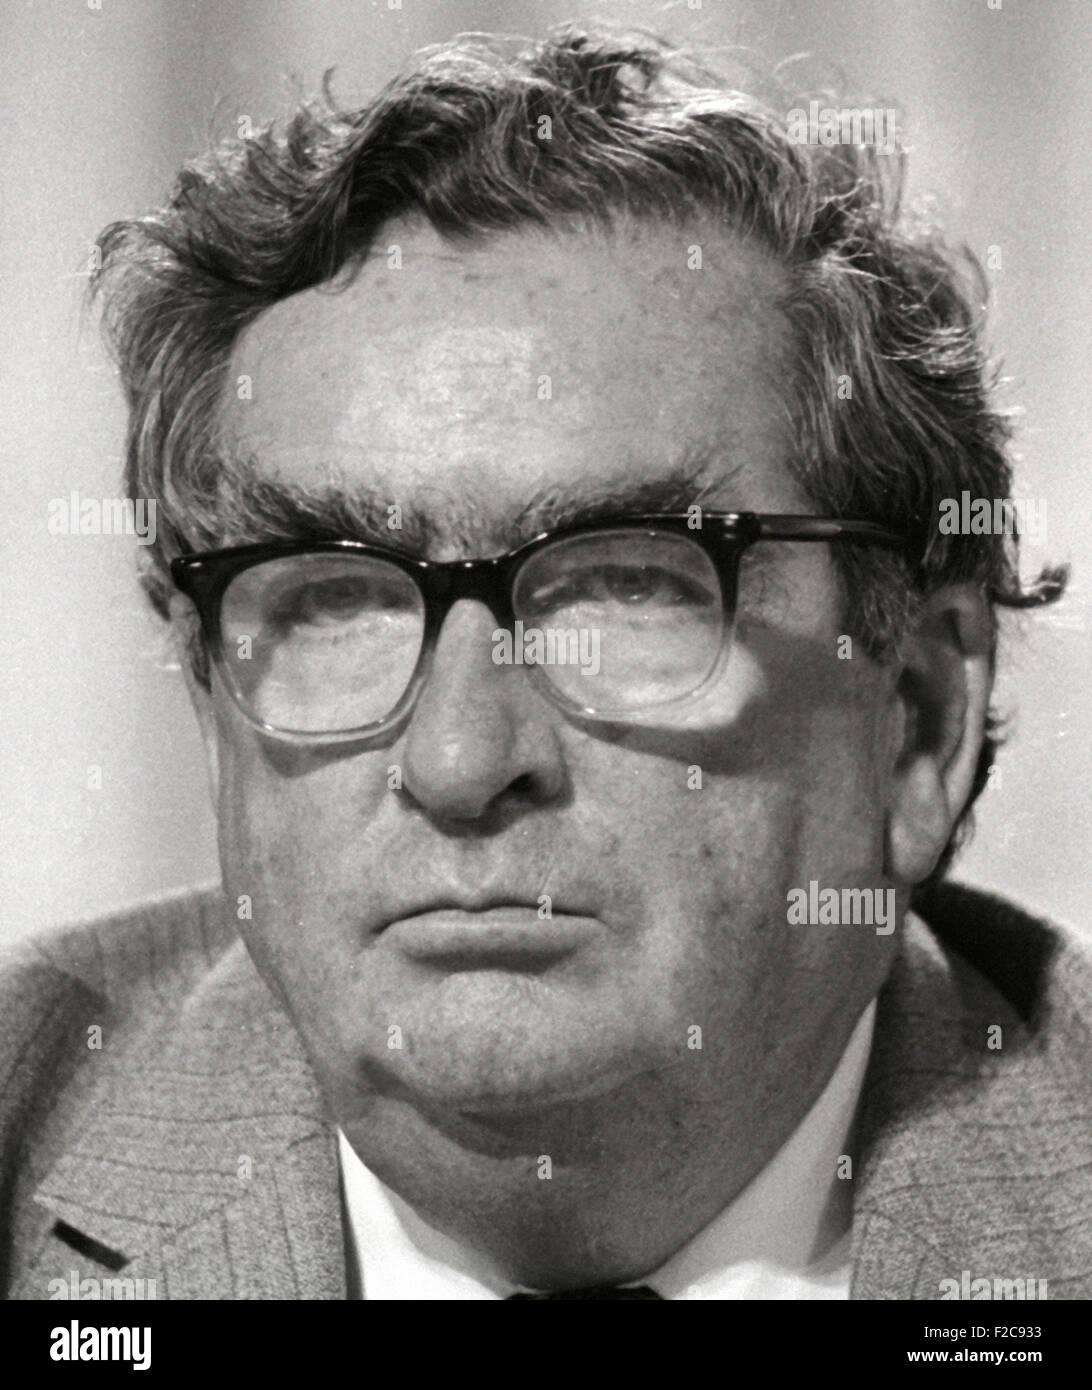 Denis Winston Healey Lord Healey British Labour politician 1984 image - Stock Image